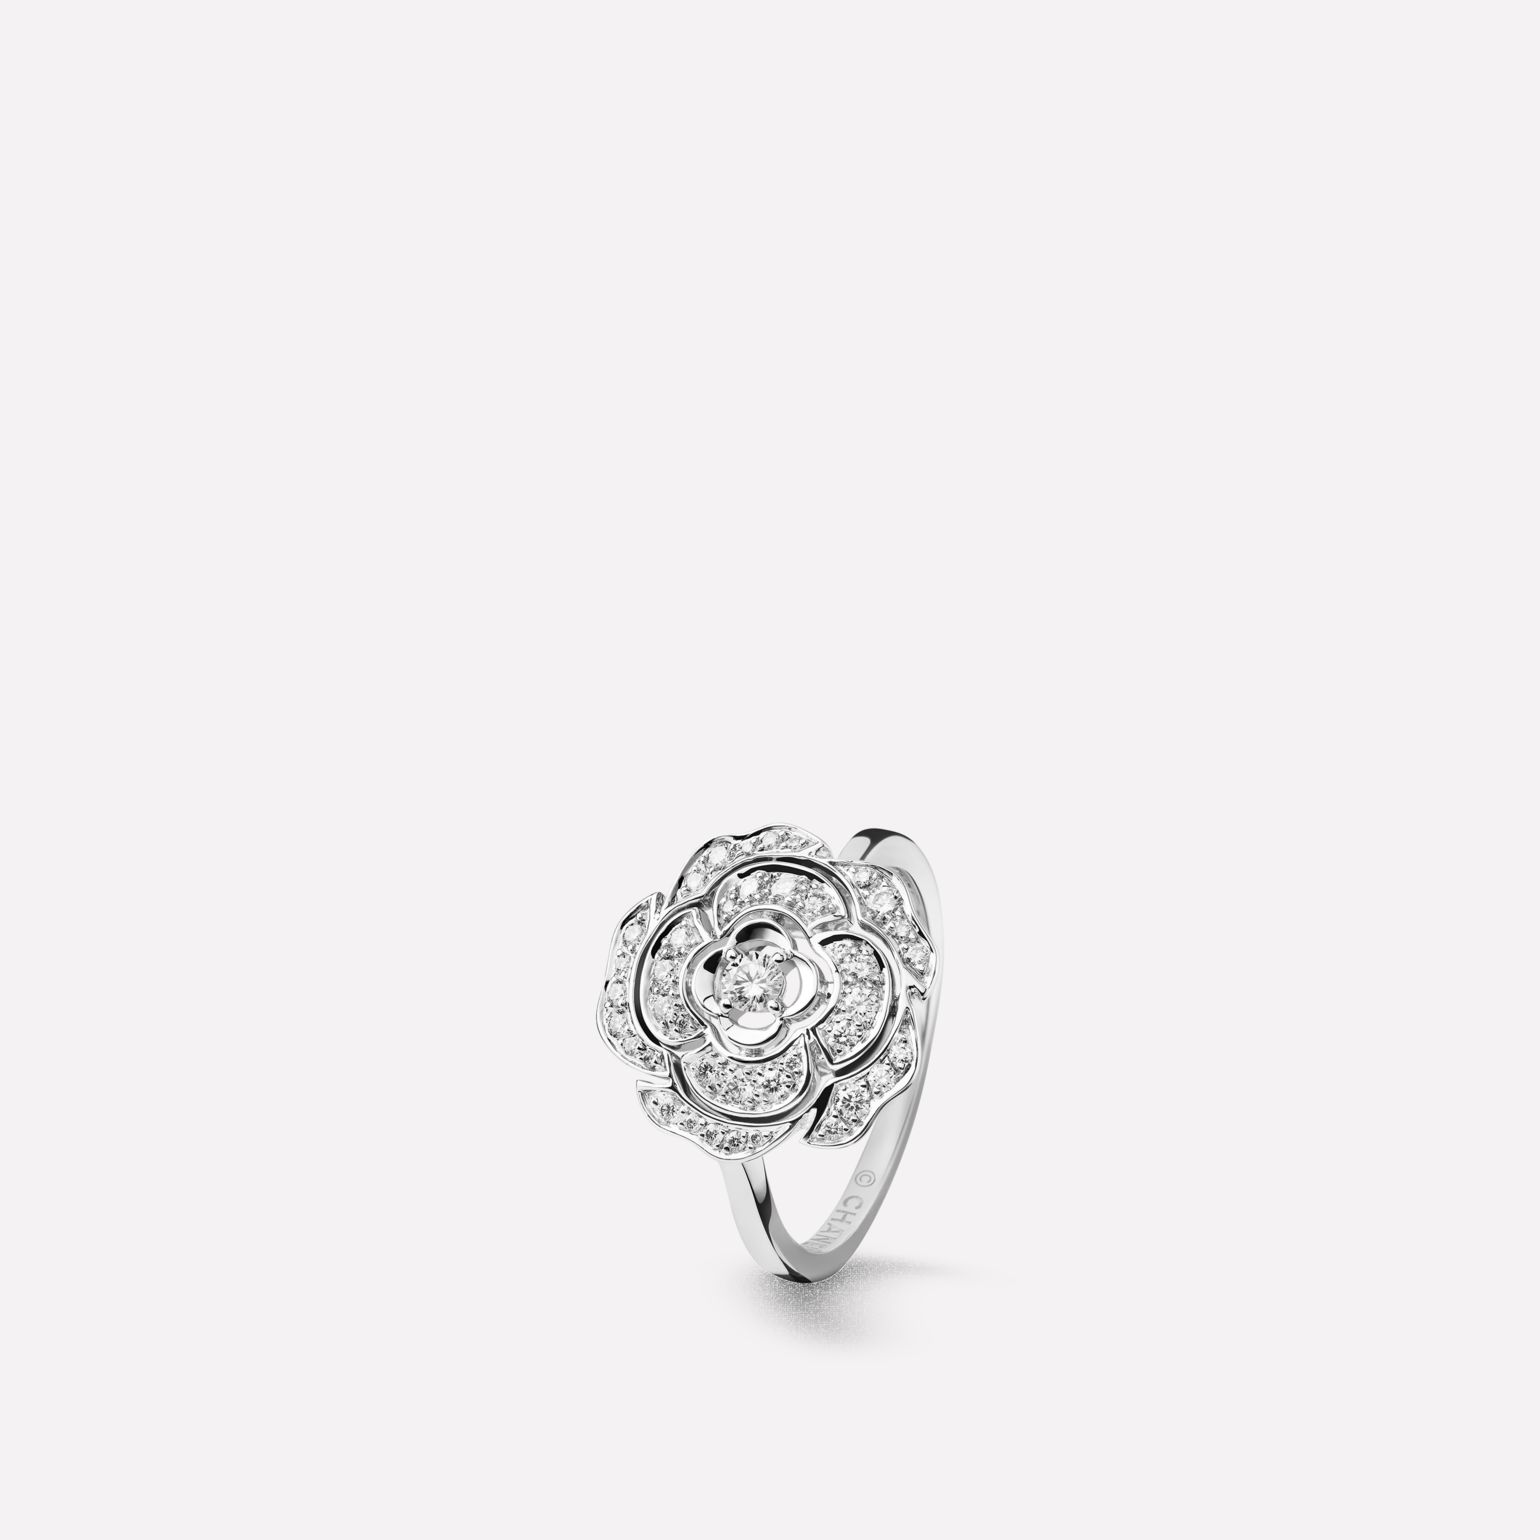 Bouton de Camélia ring 18K white gold, diamonds